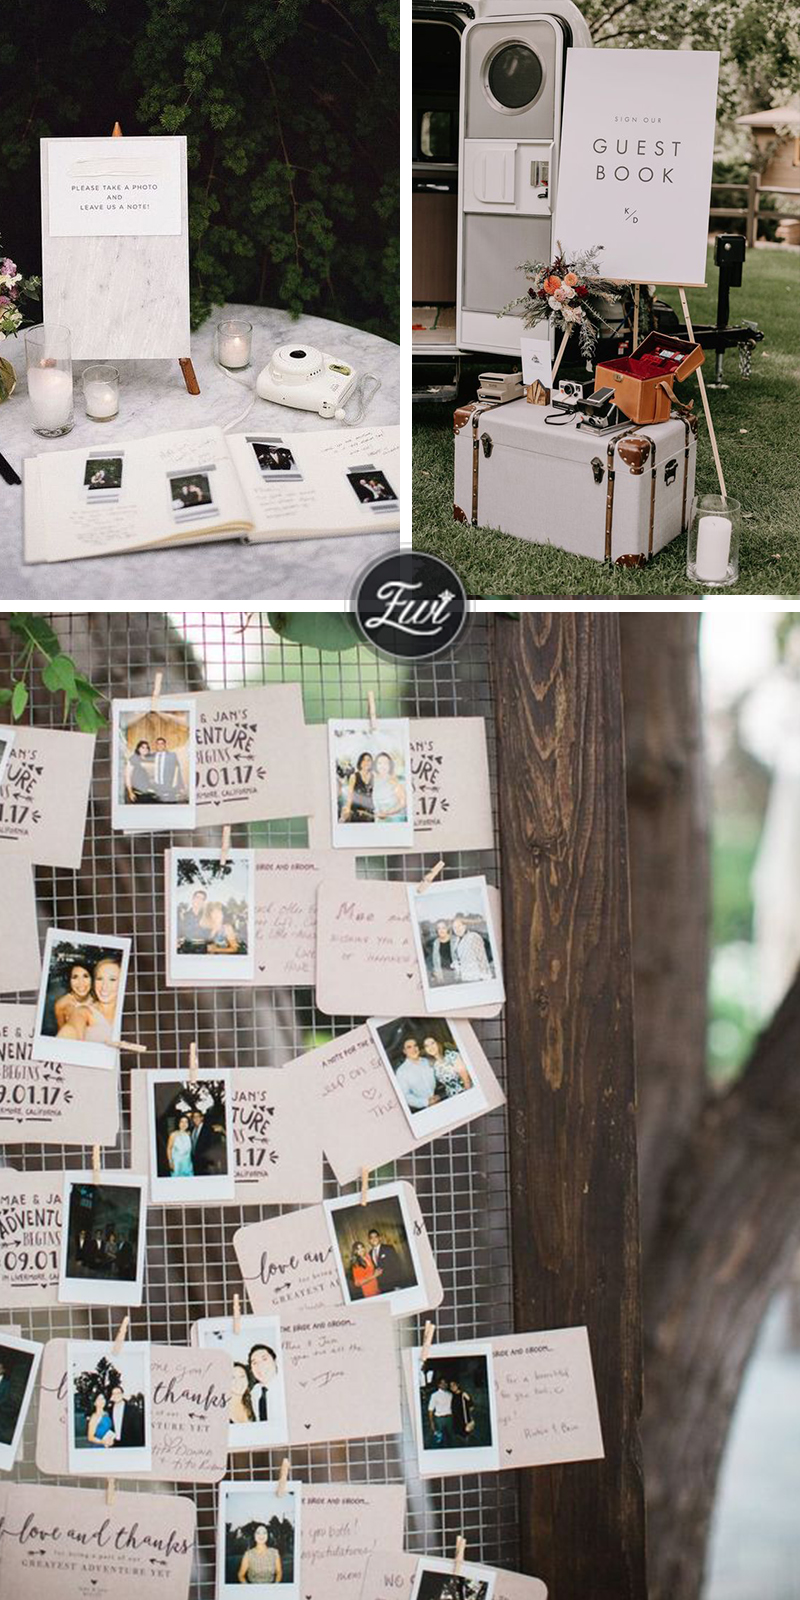 DIY wedding guest book with photos and polaroid wedding guest book